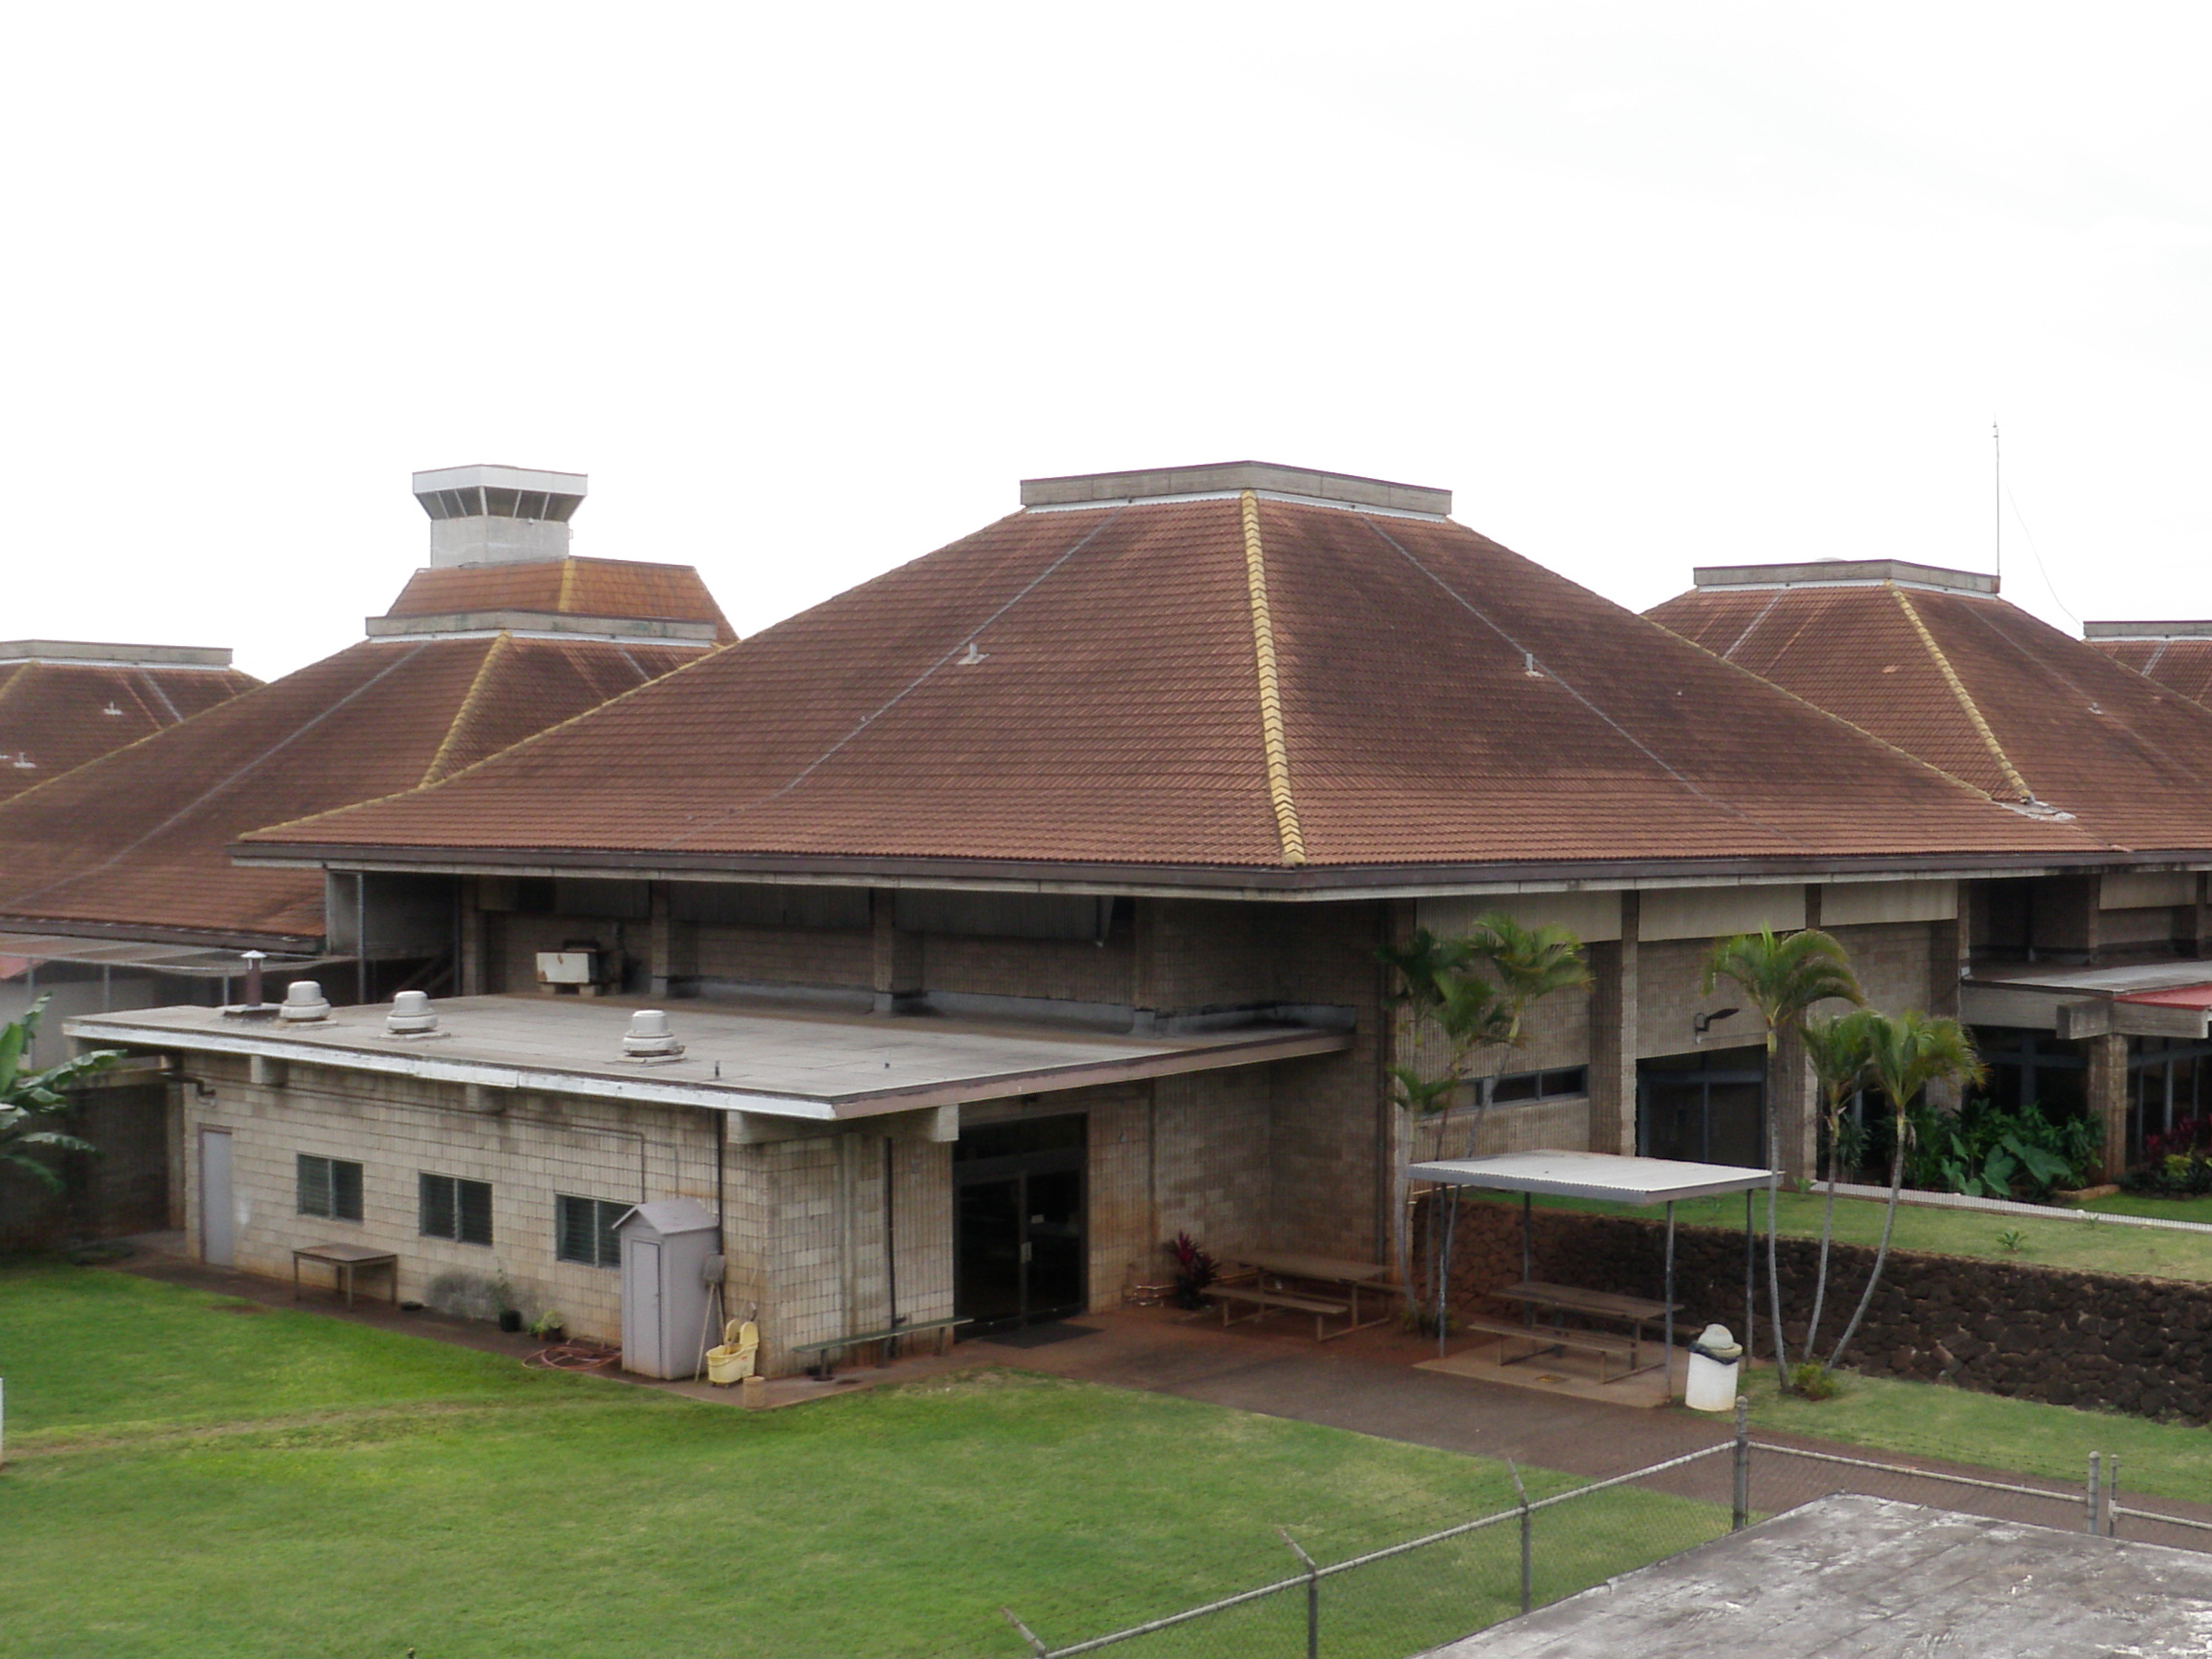 Department of Public Safety | Oahu Community Correctional Center